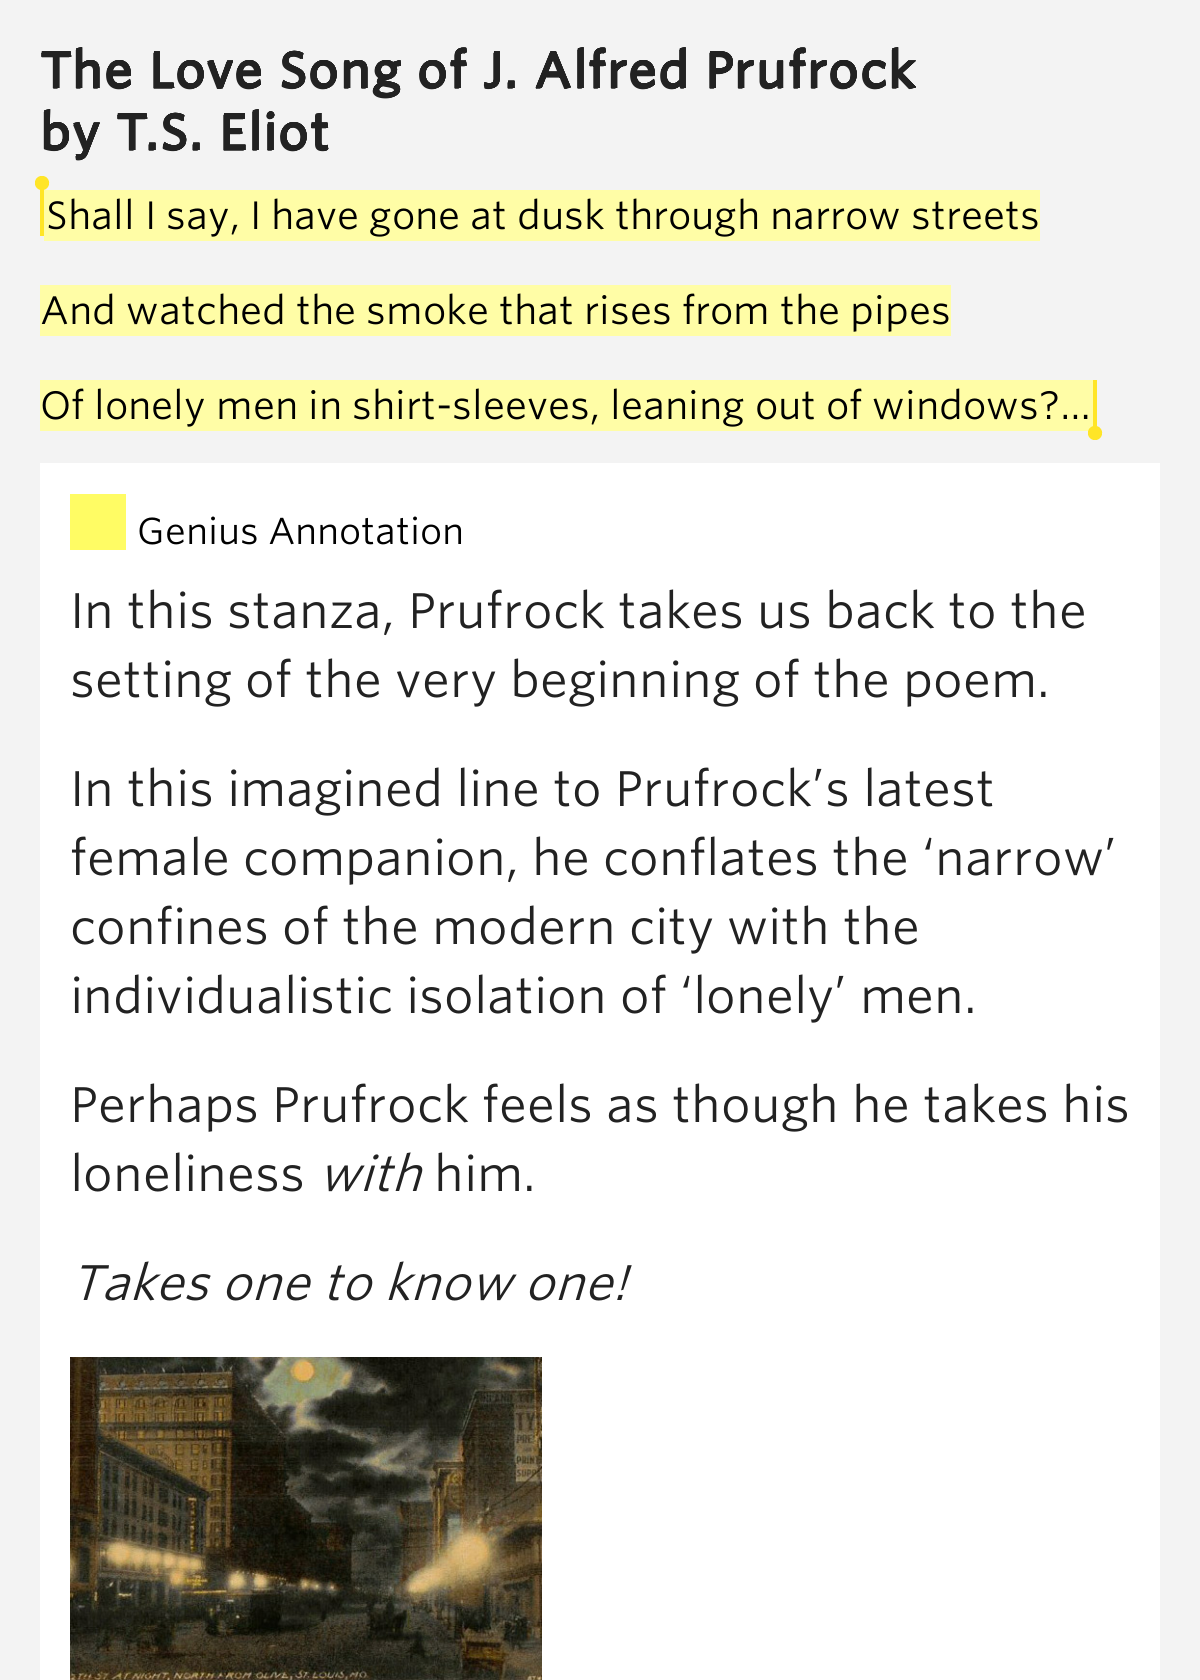 the lovesong of j alfred prufrock text pdf